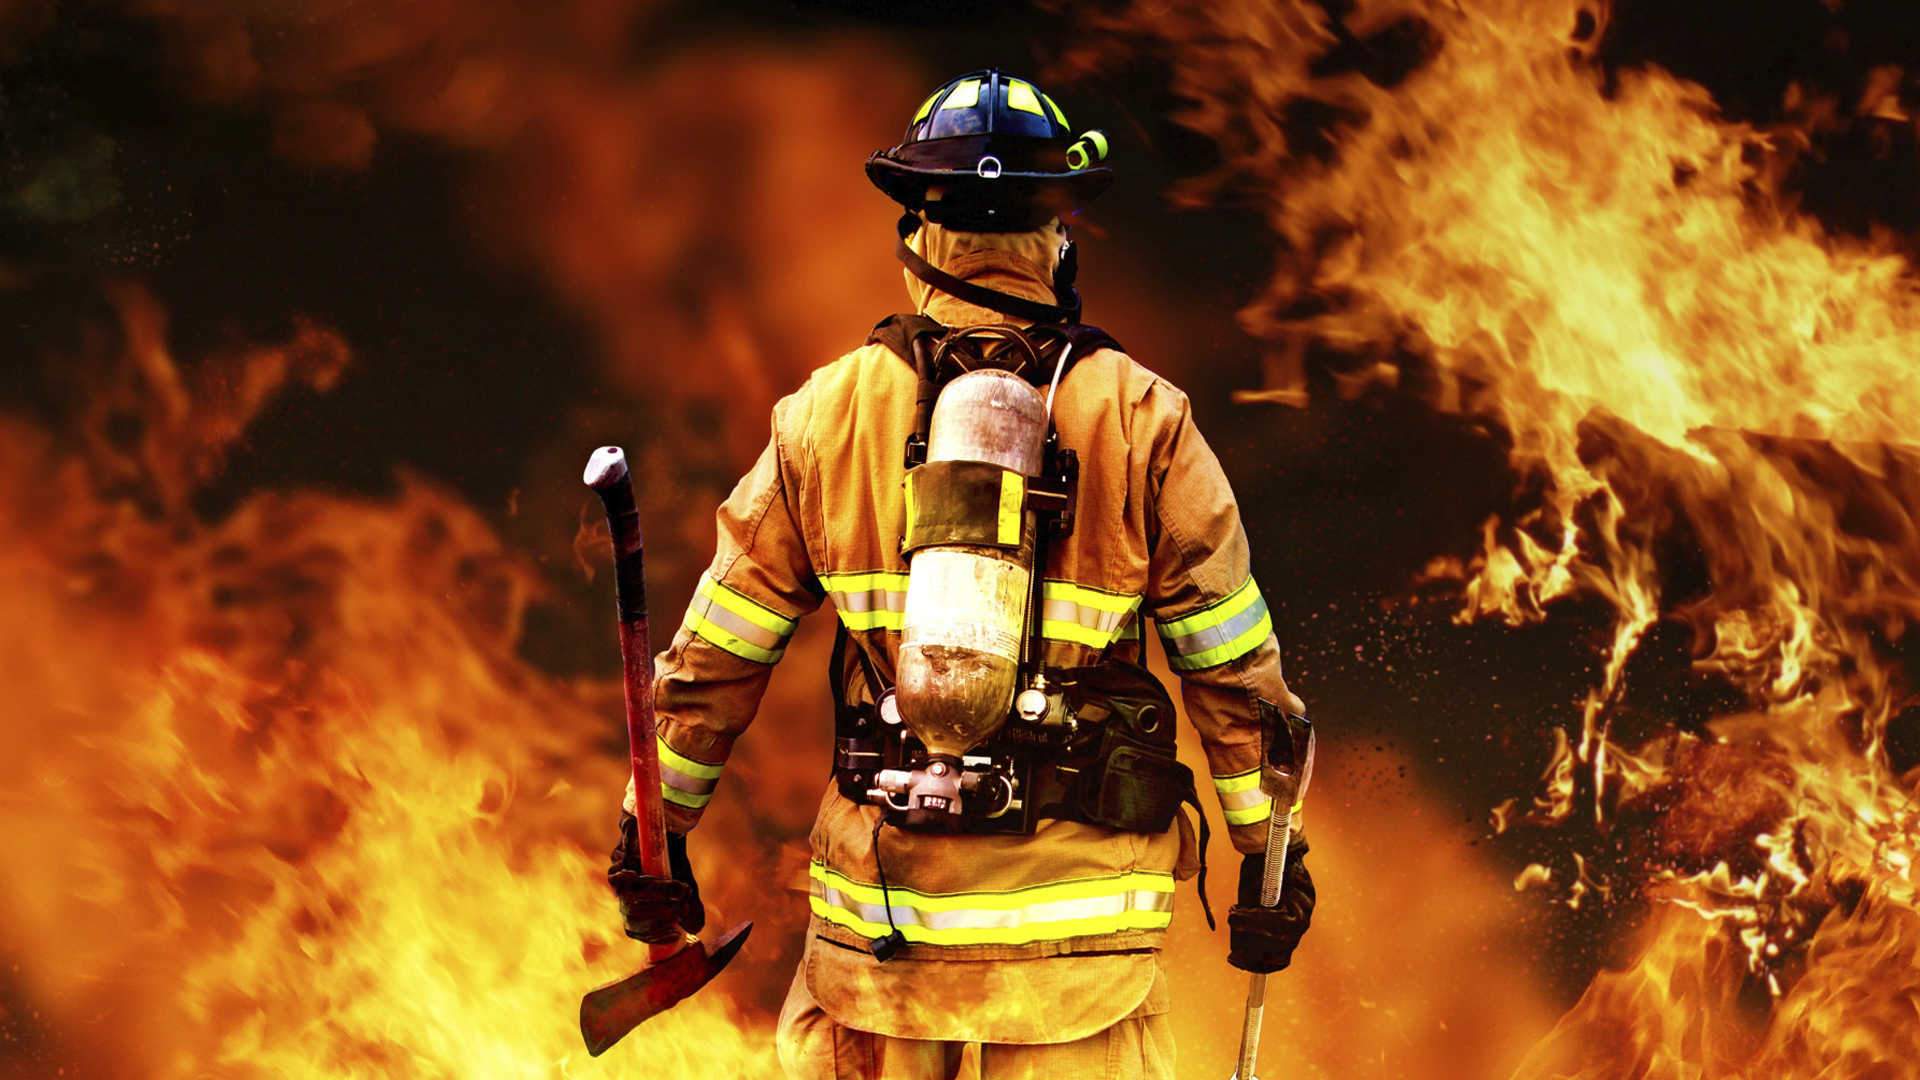 fireman wallpapers full hd pictures. Black Bedroom Furniture Sets. Home Design Ideas